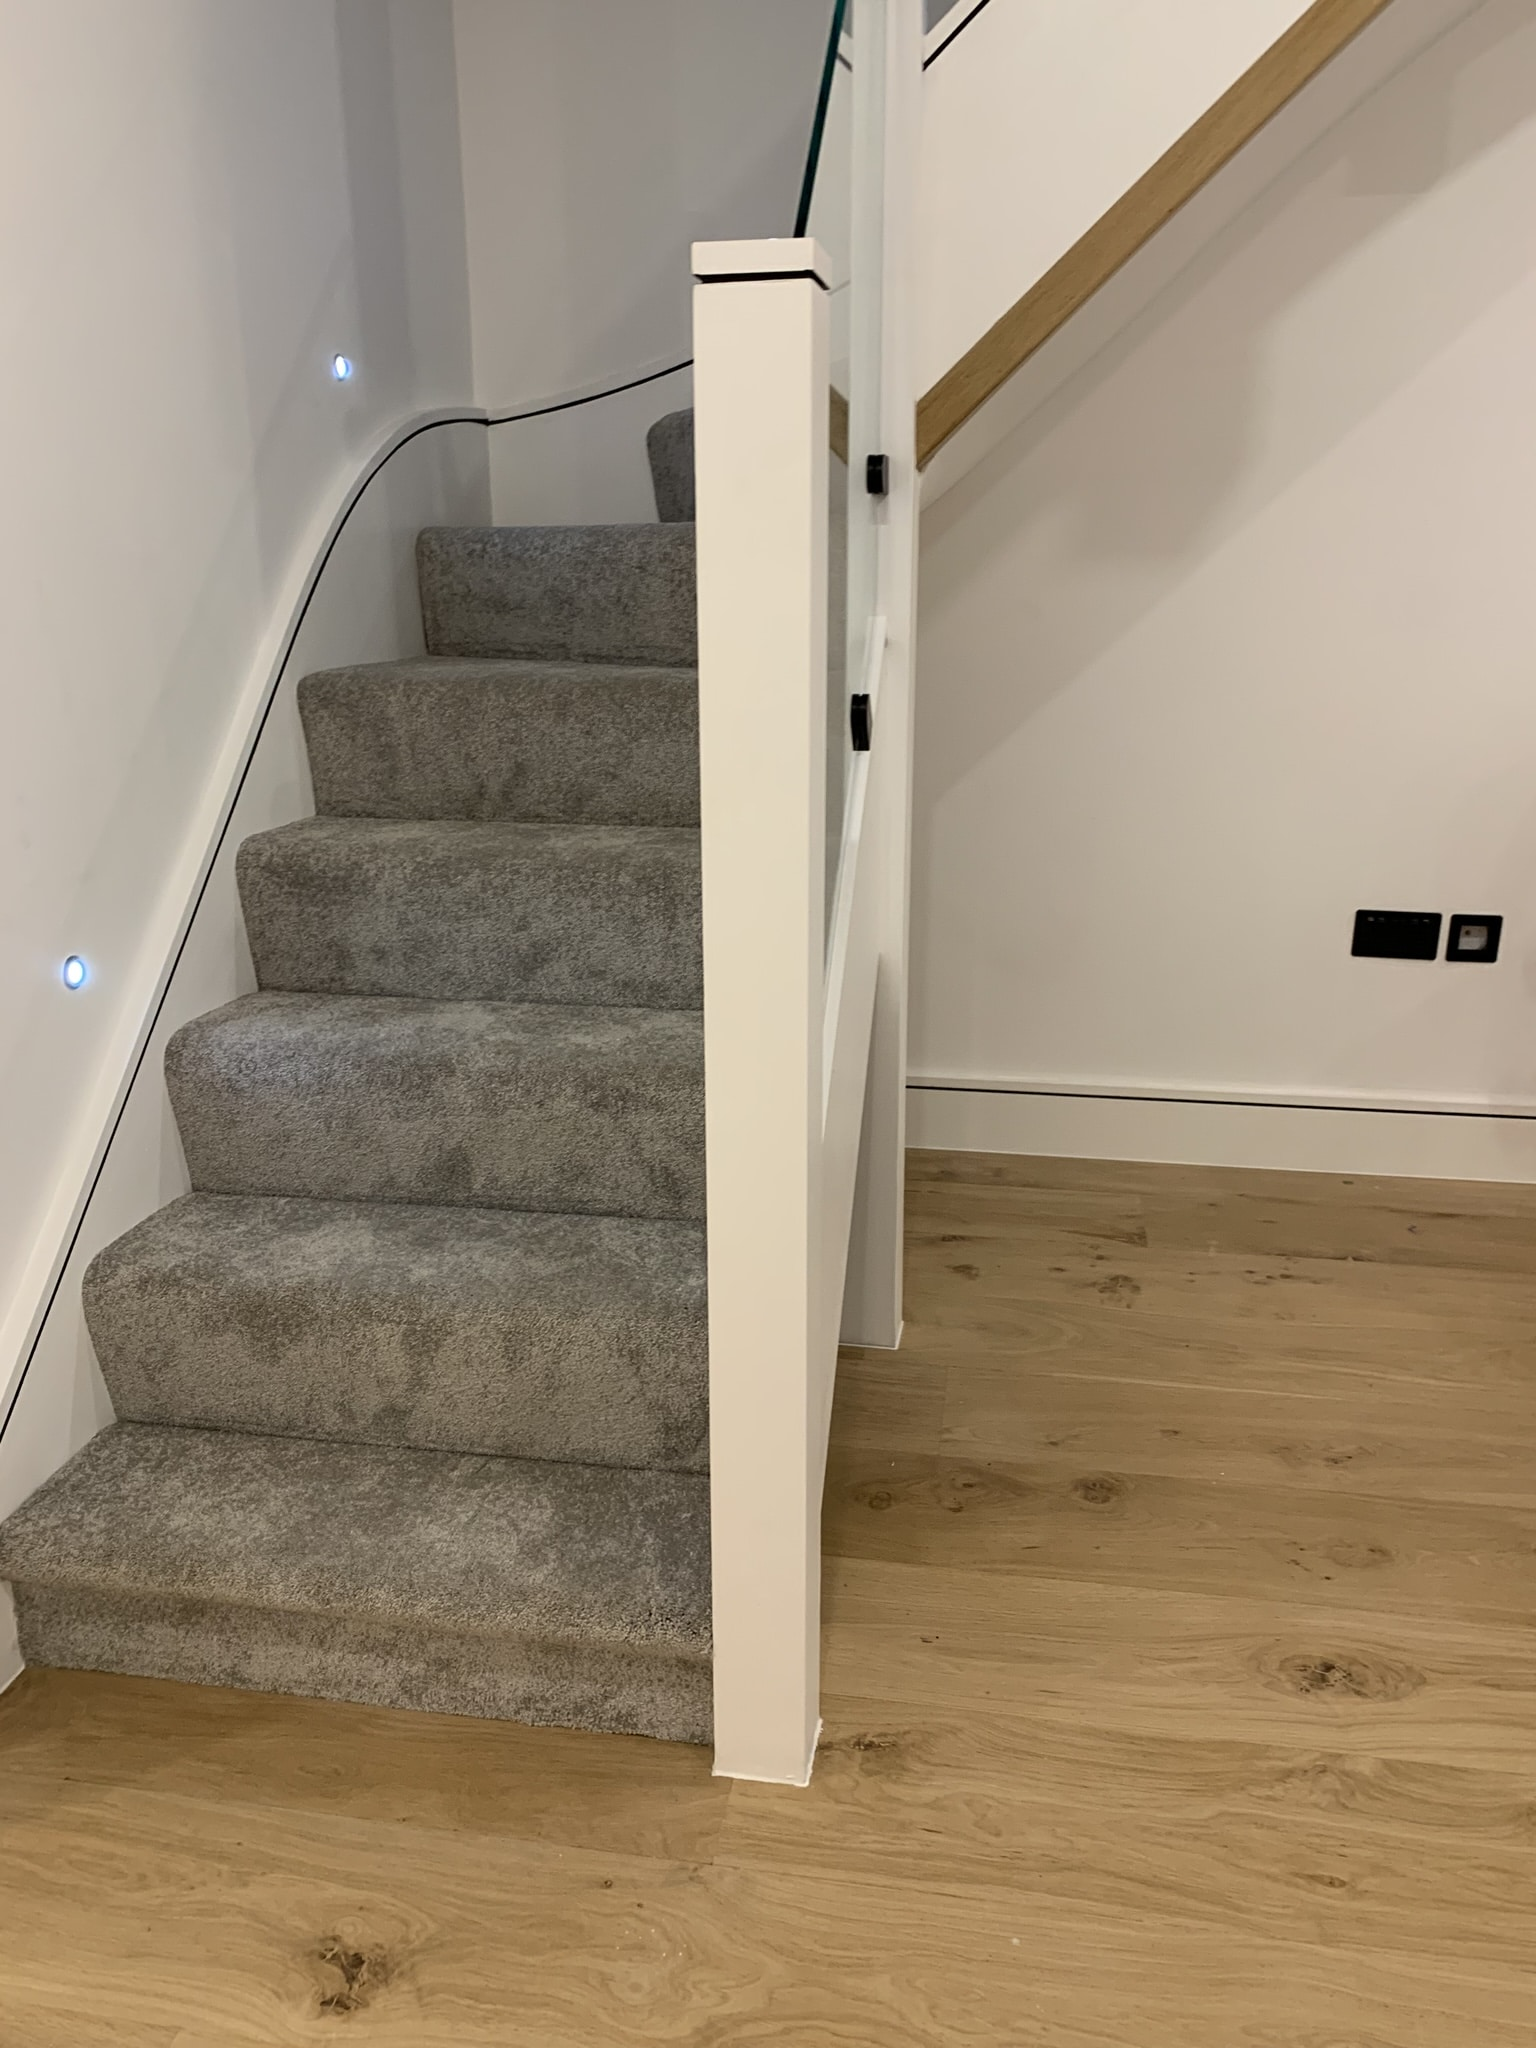 Staircase with carpet cover and toughened safety glass balustrade.